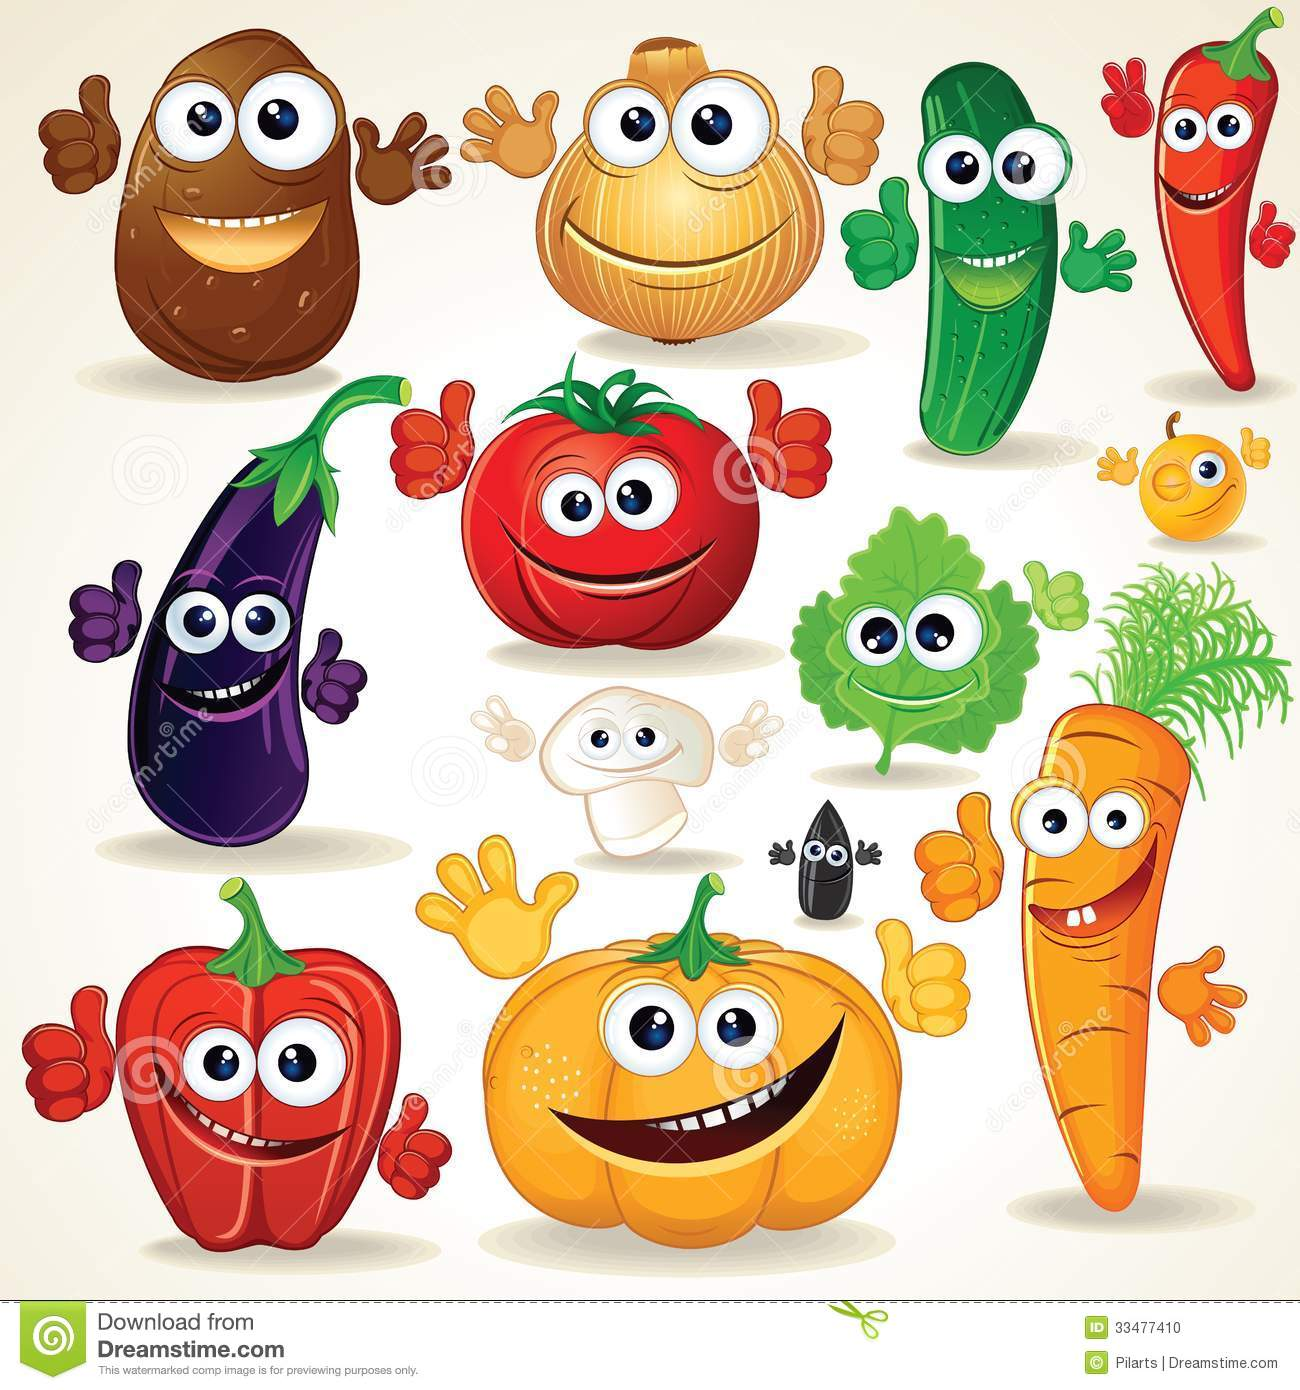 Funny Cartoon Vegetables Clip Art Stock Photo   Image  33477410